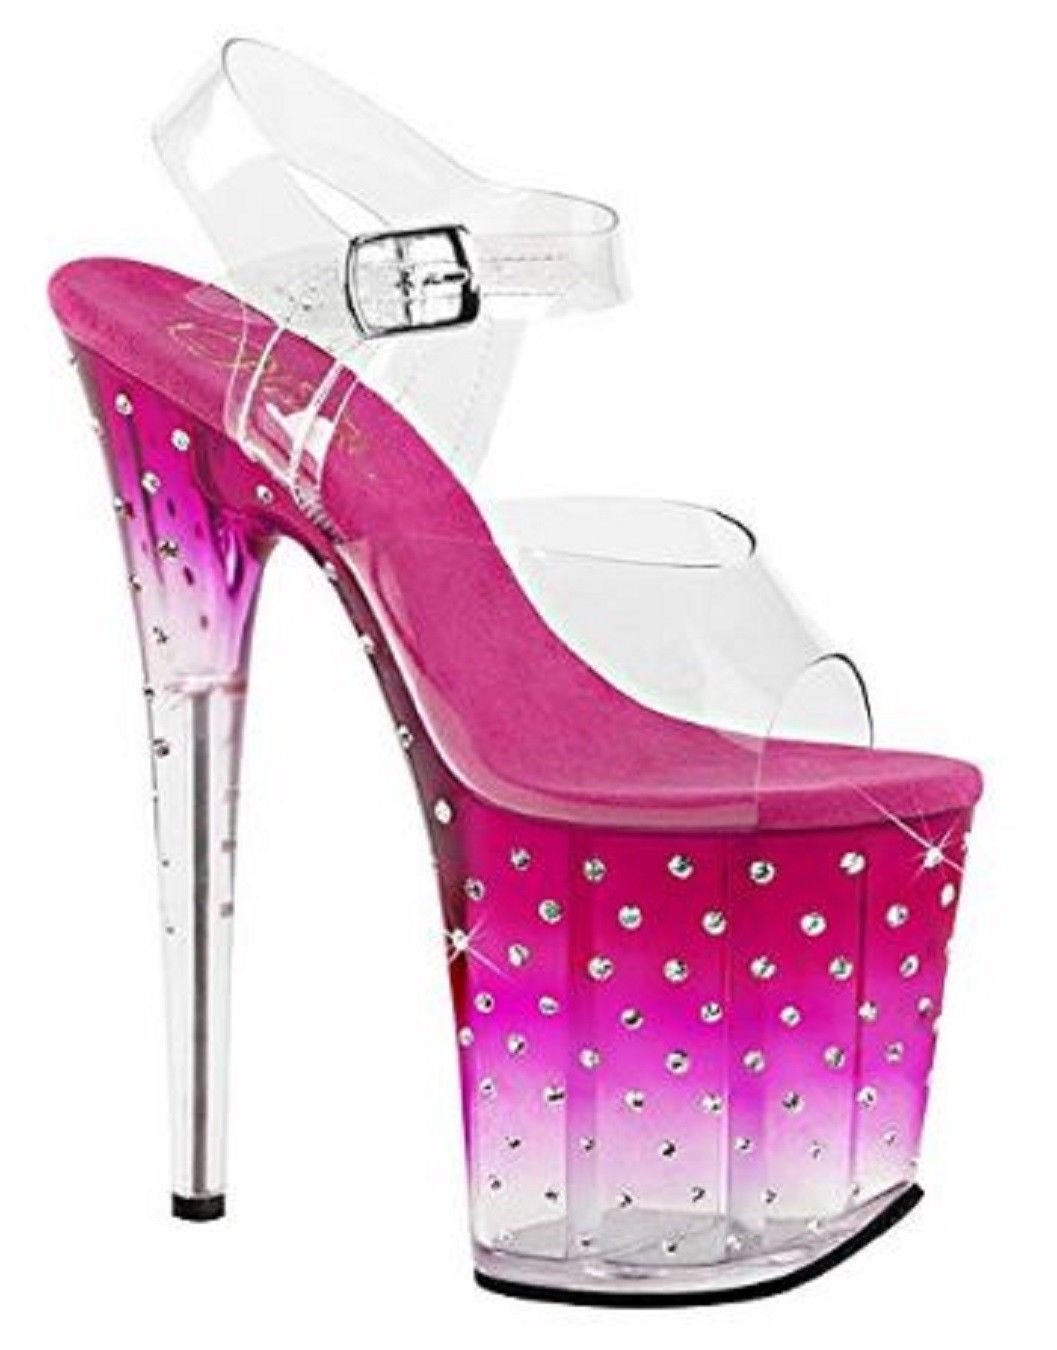 Pleaser STARDUST-808T Exotic Dancer Super High Heels 8